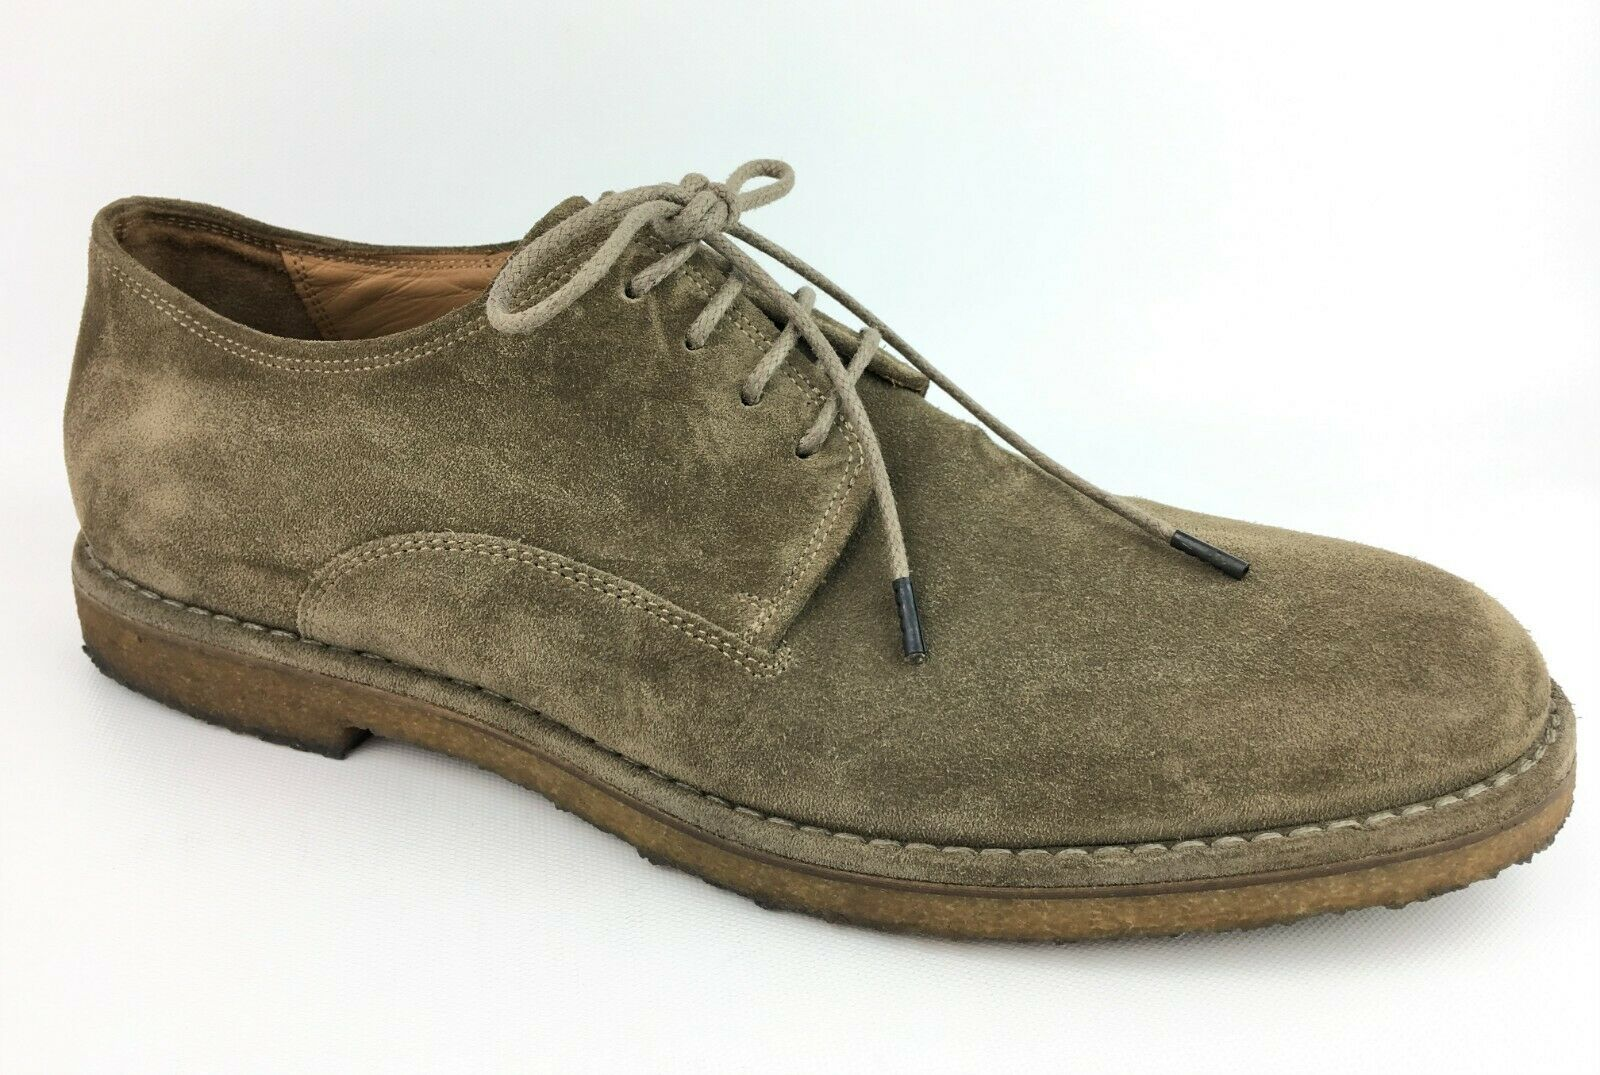 Vince Men's Stetson Suede Crepe Sole Derby Oxfords (Flint) sz  US 11